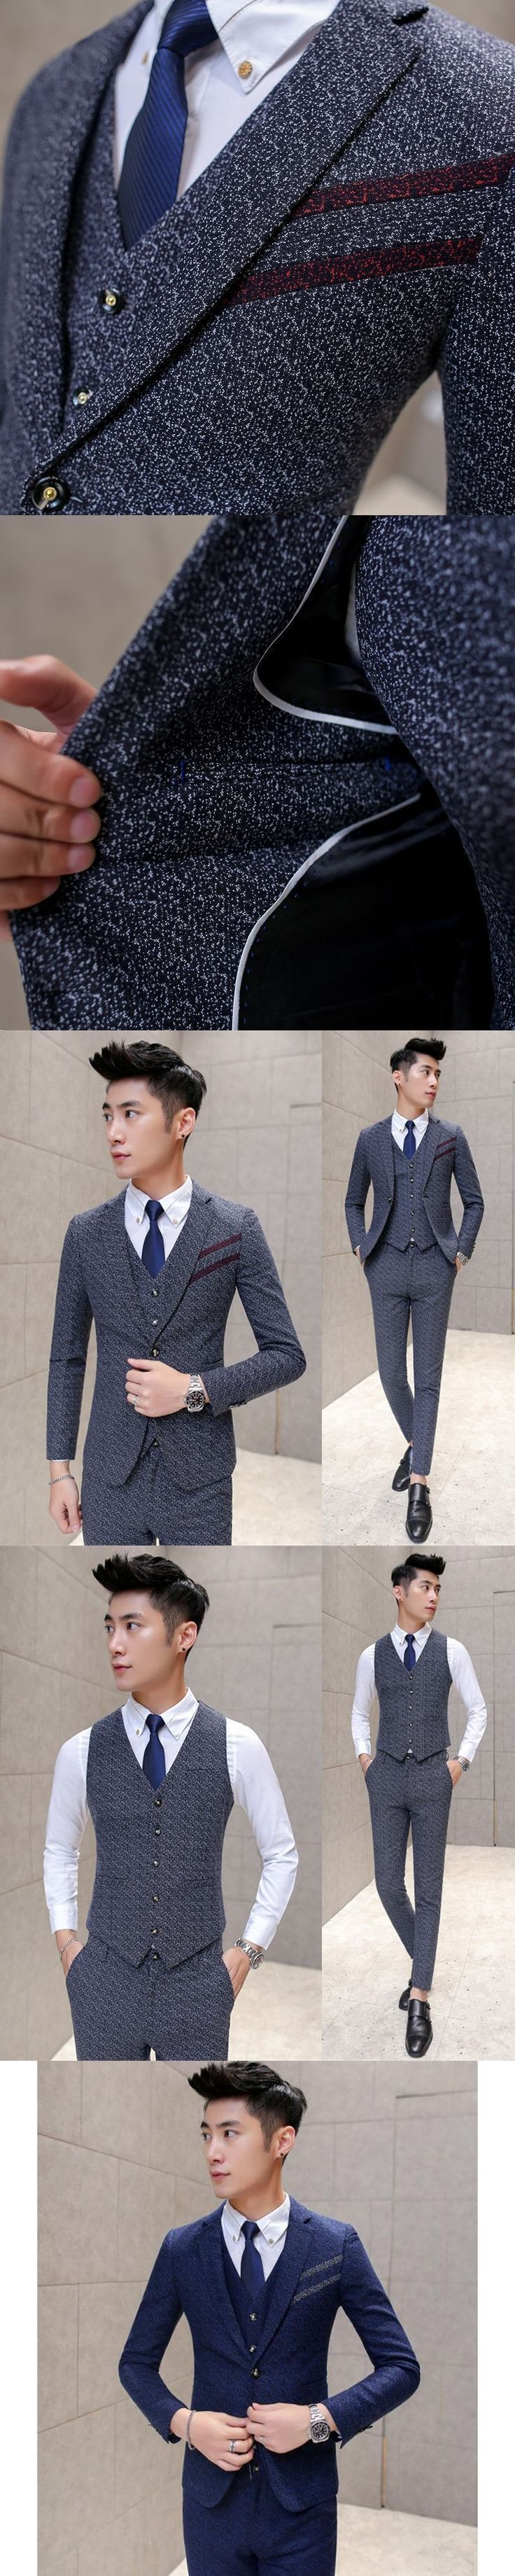 Men business suit mens suits with pants latest coat pant designs tuxedo wedding suits mens 3 piece suit #menweddingsuits #mens3piecesuits #menssuitsbusiness